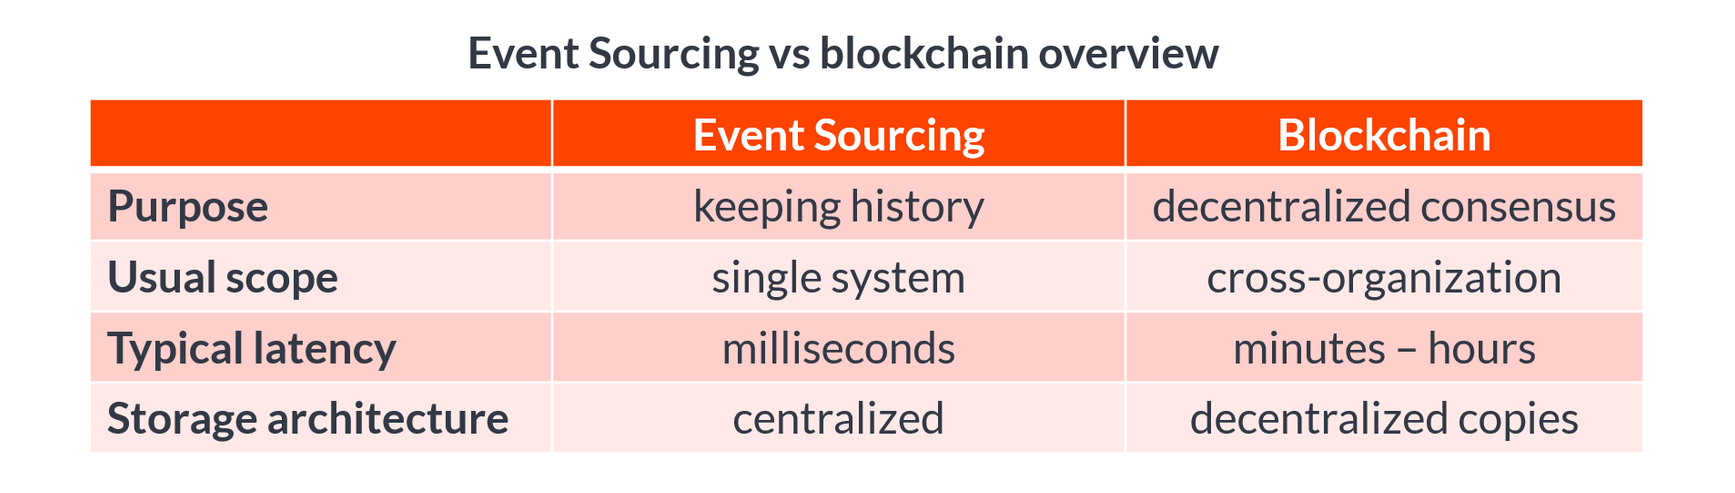 Event sourcing vs Blockchain